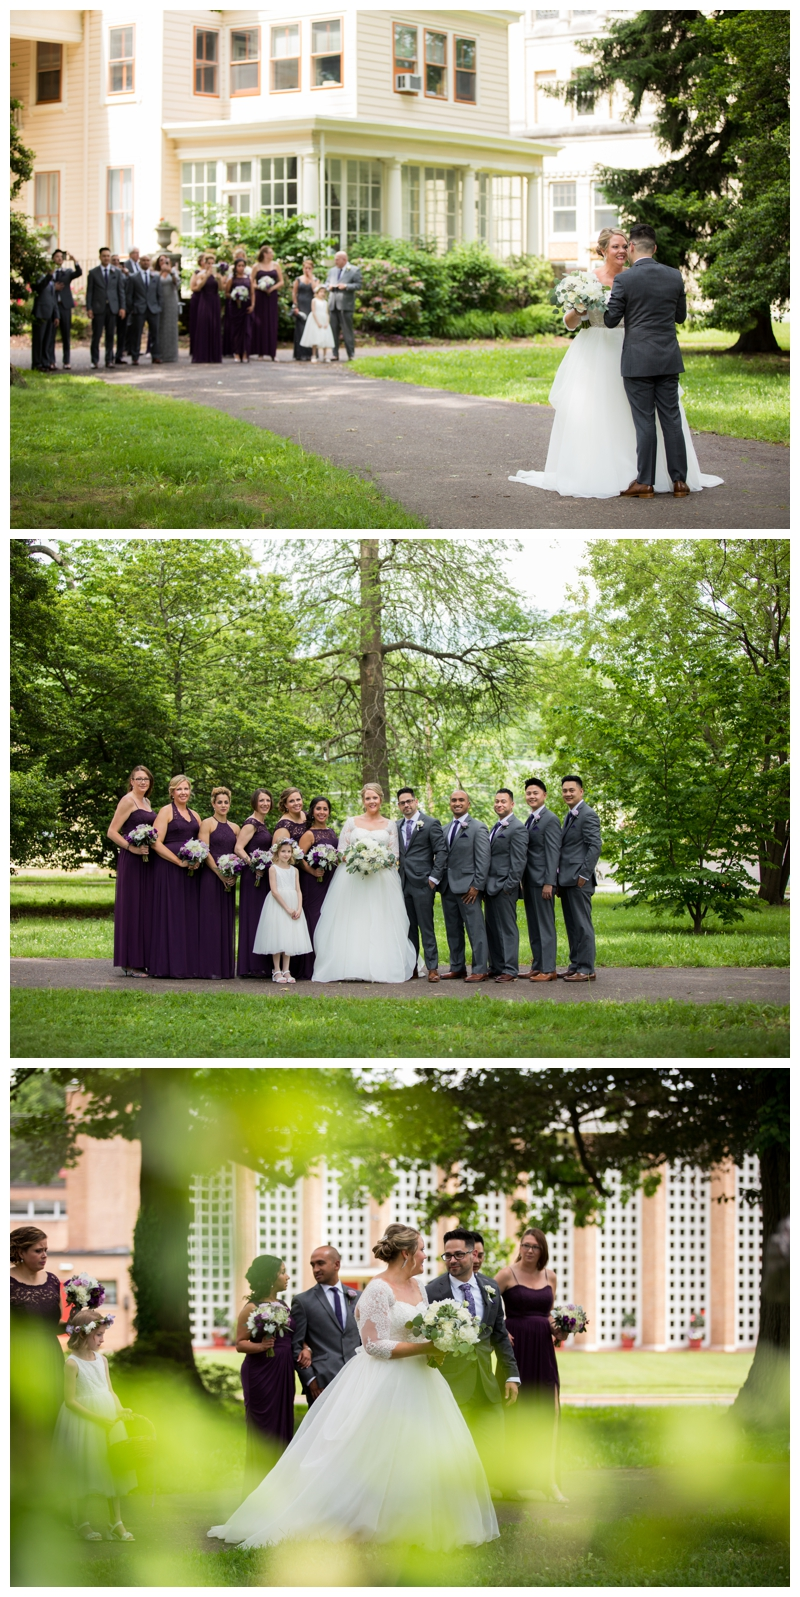 I love that Meg and Eric invited their bridal party and family to witness their first look- their reactions were sooo worth capturing!